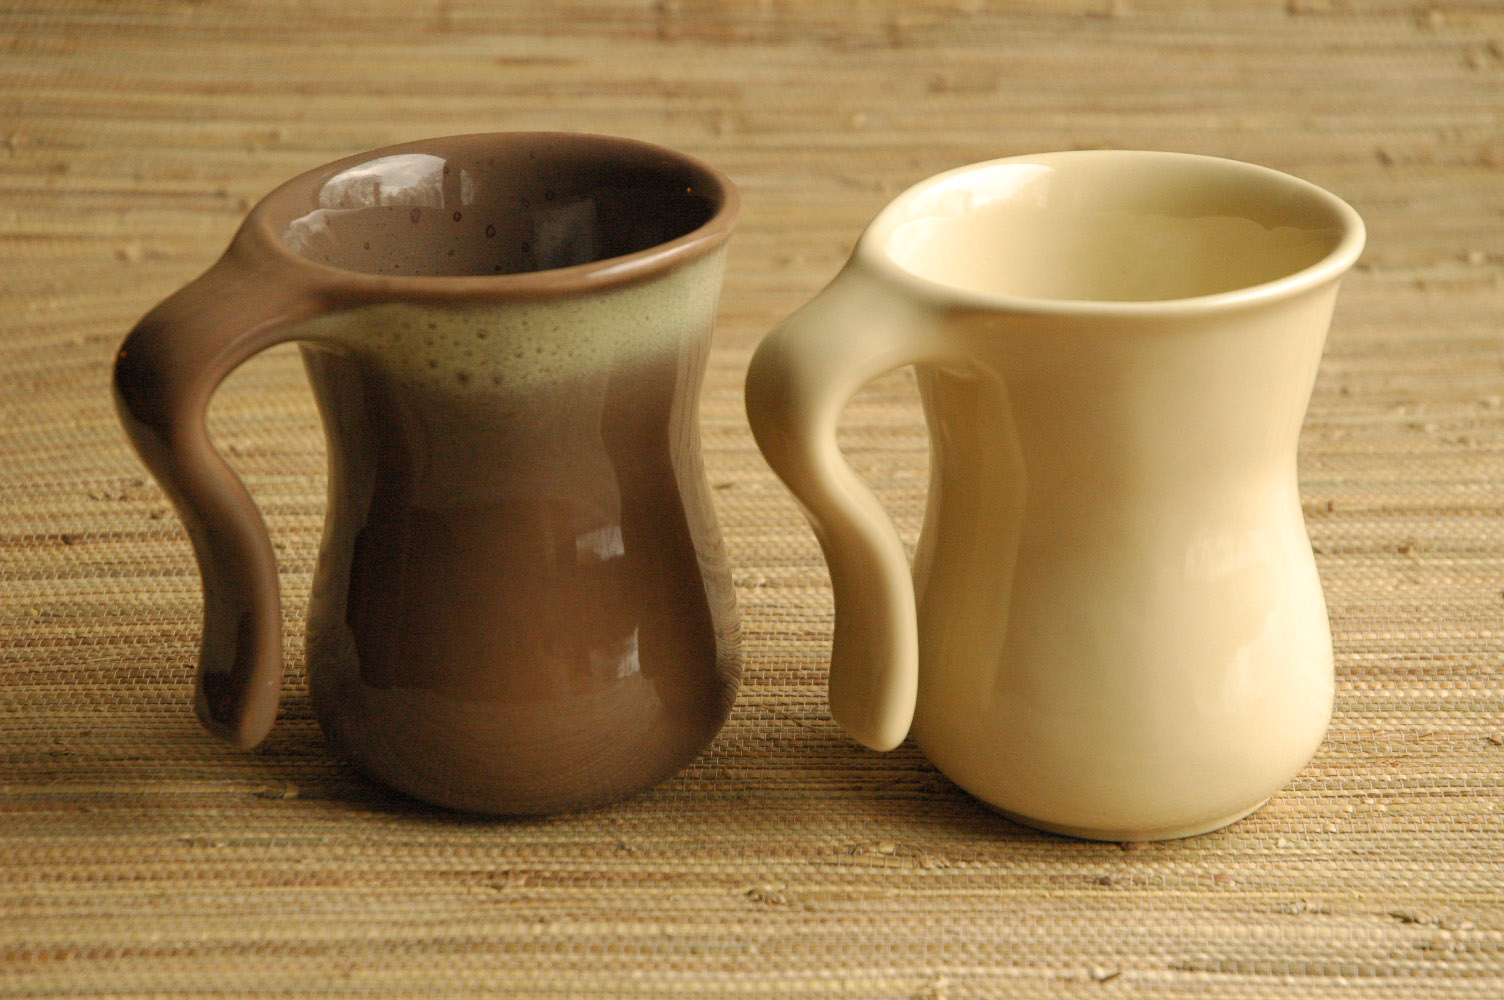 Tamac open handle mugs